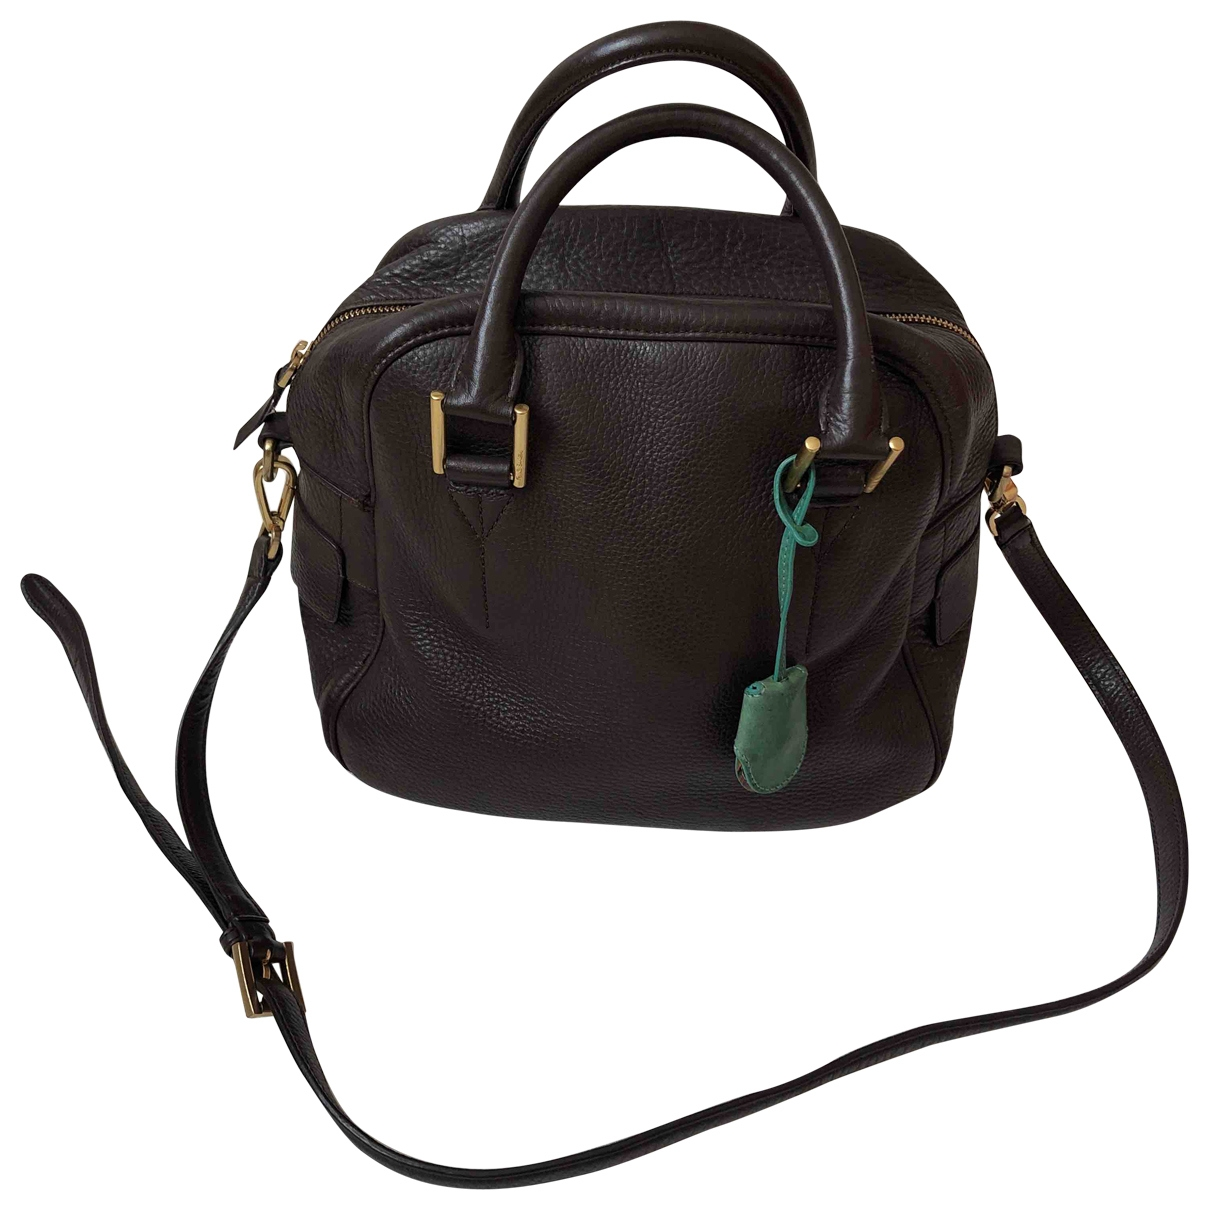 Paul Smith \N Handtasche in  Braun Leder